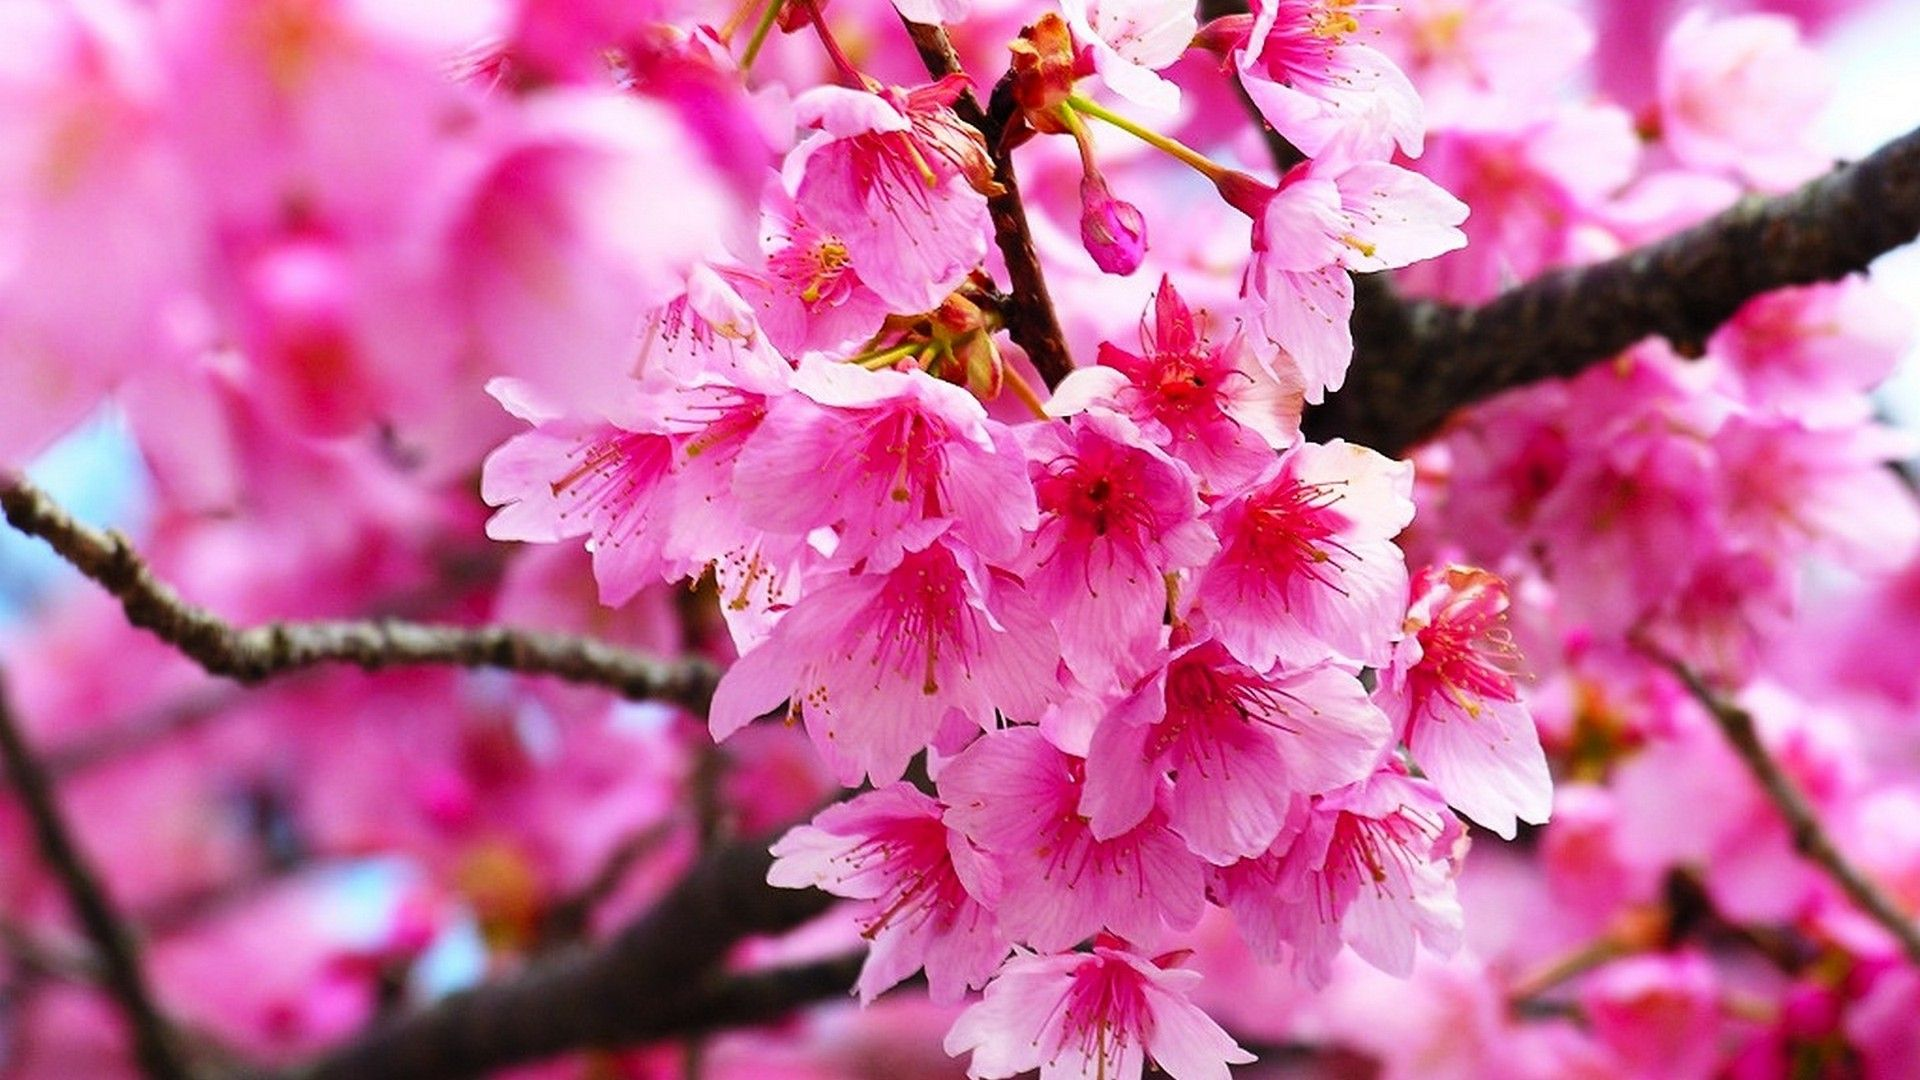 Pink Cherry Blossom Wallpaper HD Bunga sakura, Wallpaper